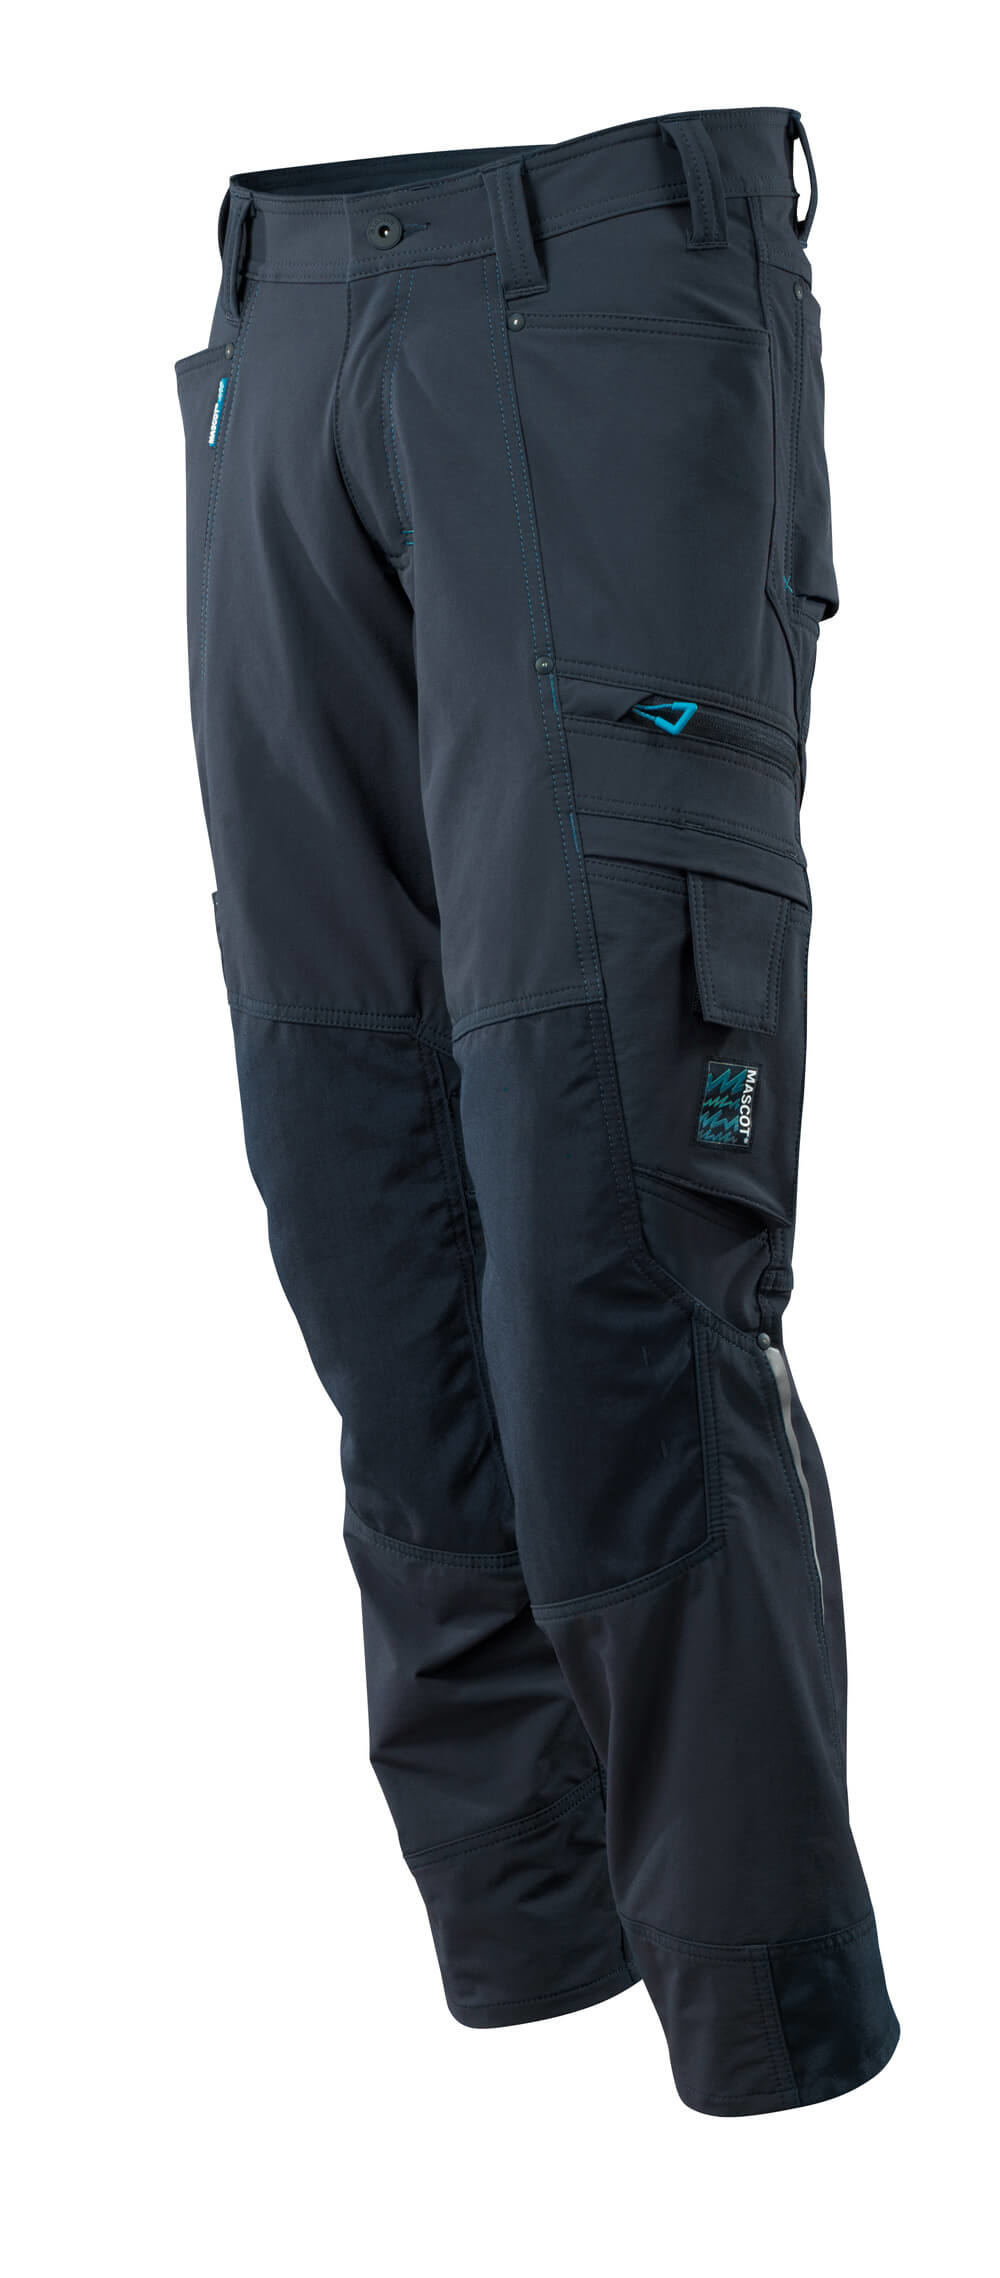 Trousers with kneepad pockets, stretch